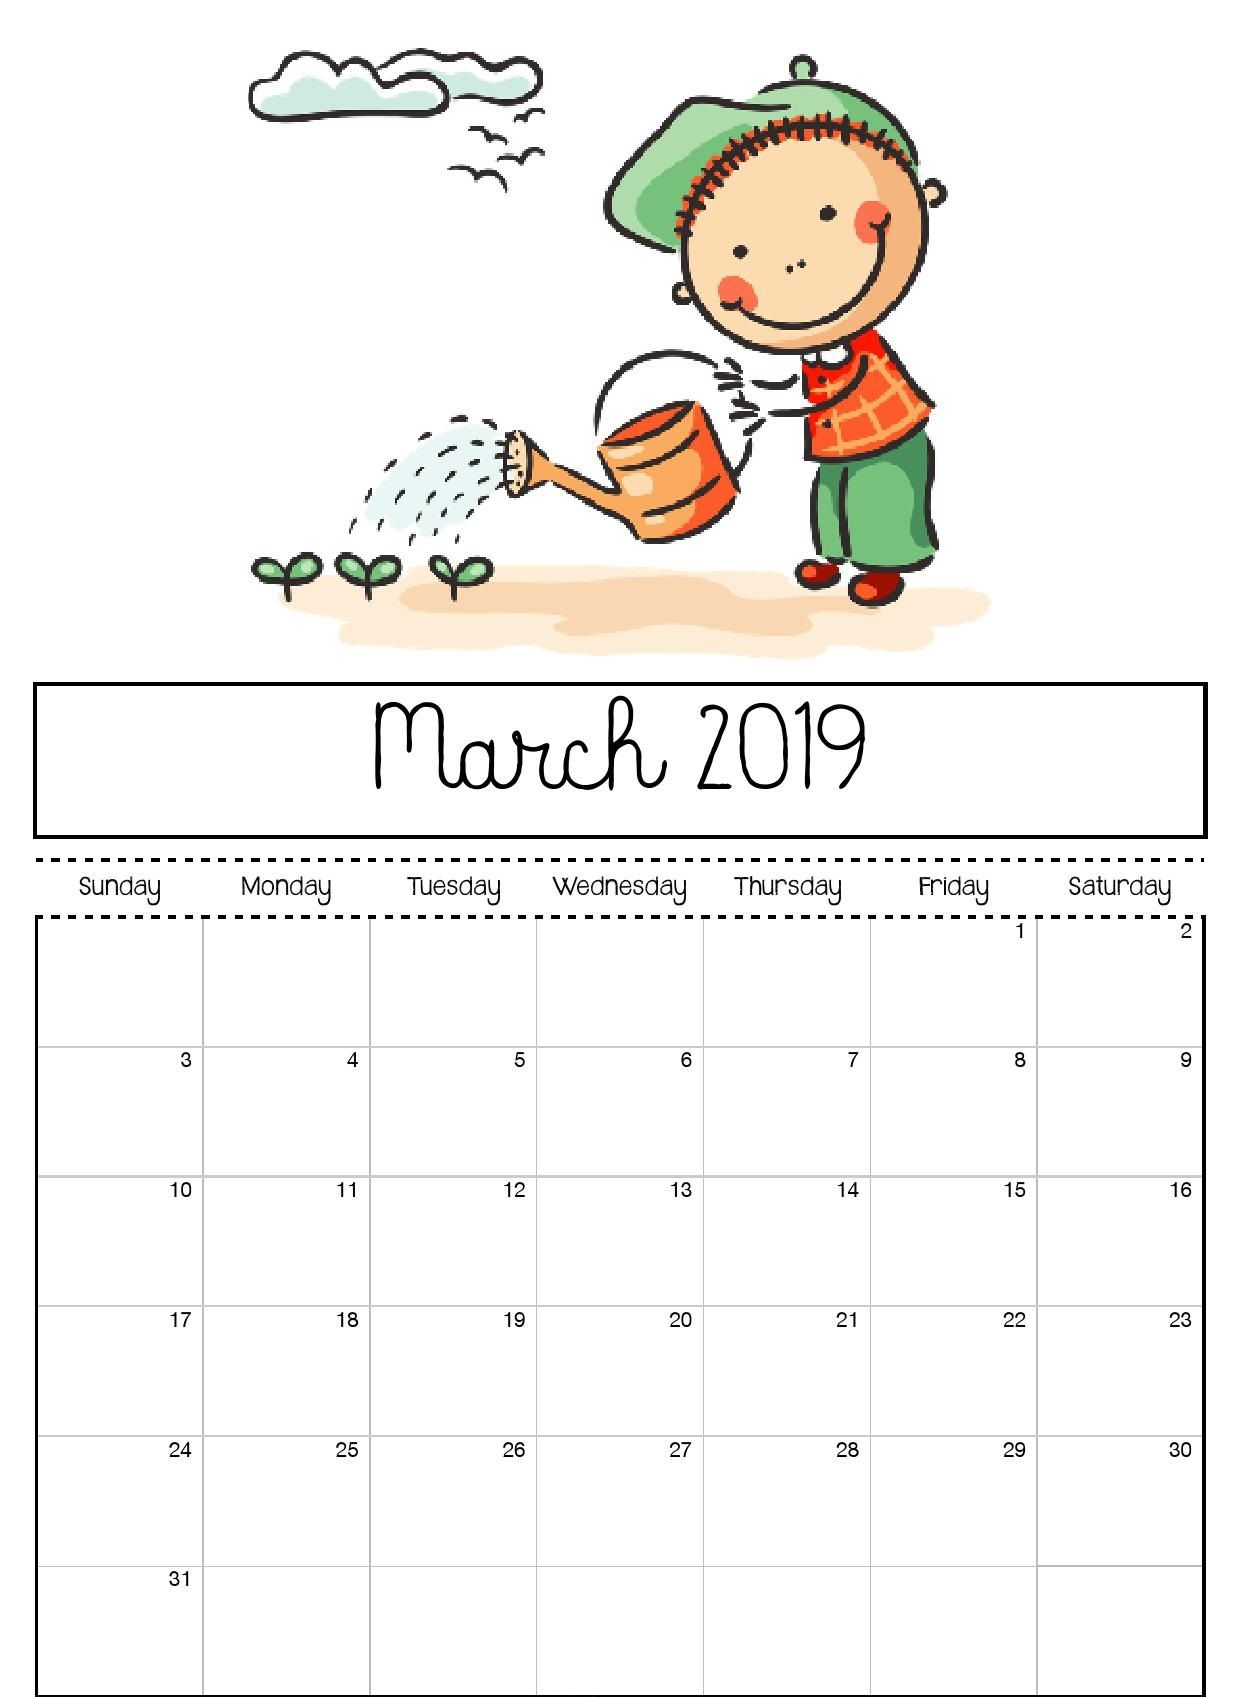 March 2019 Printable Calendar For Kids 250 March 2019 Calendars